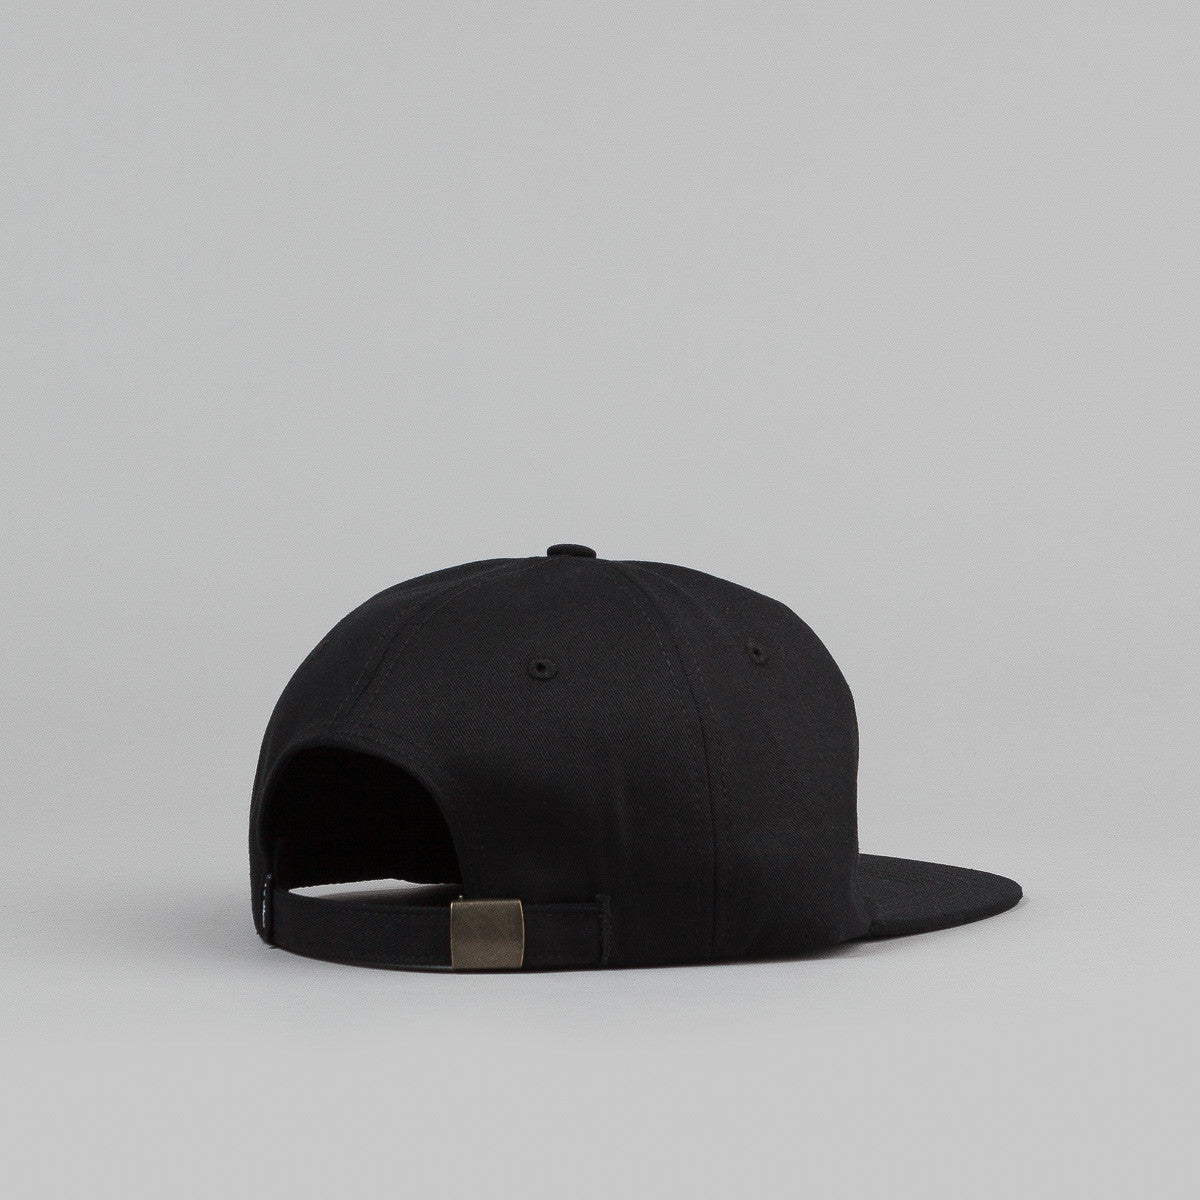 Butter Goods Rat Boy 6 Panel Cap - Black